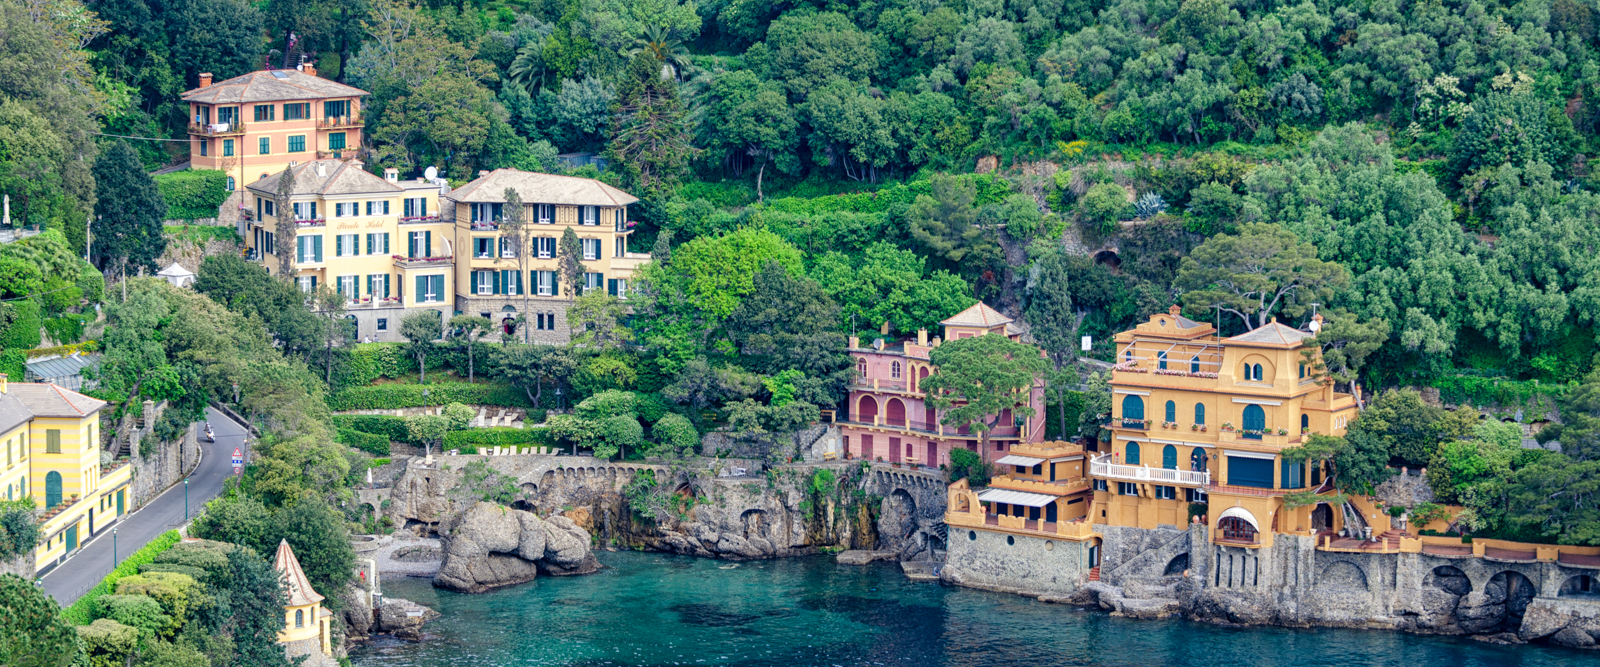 Around Portofino by Boat